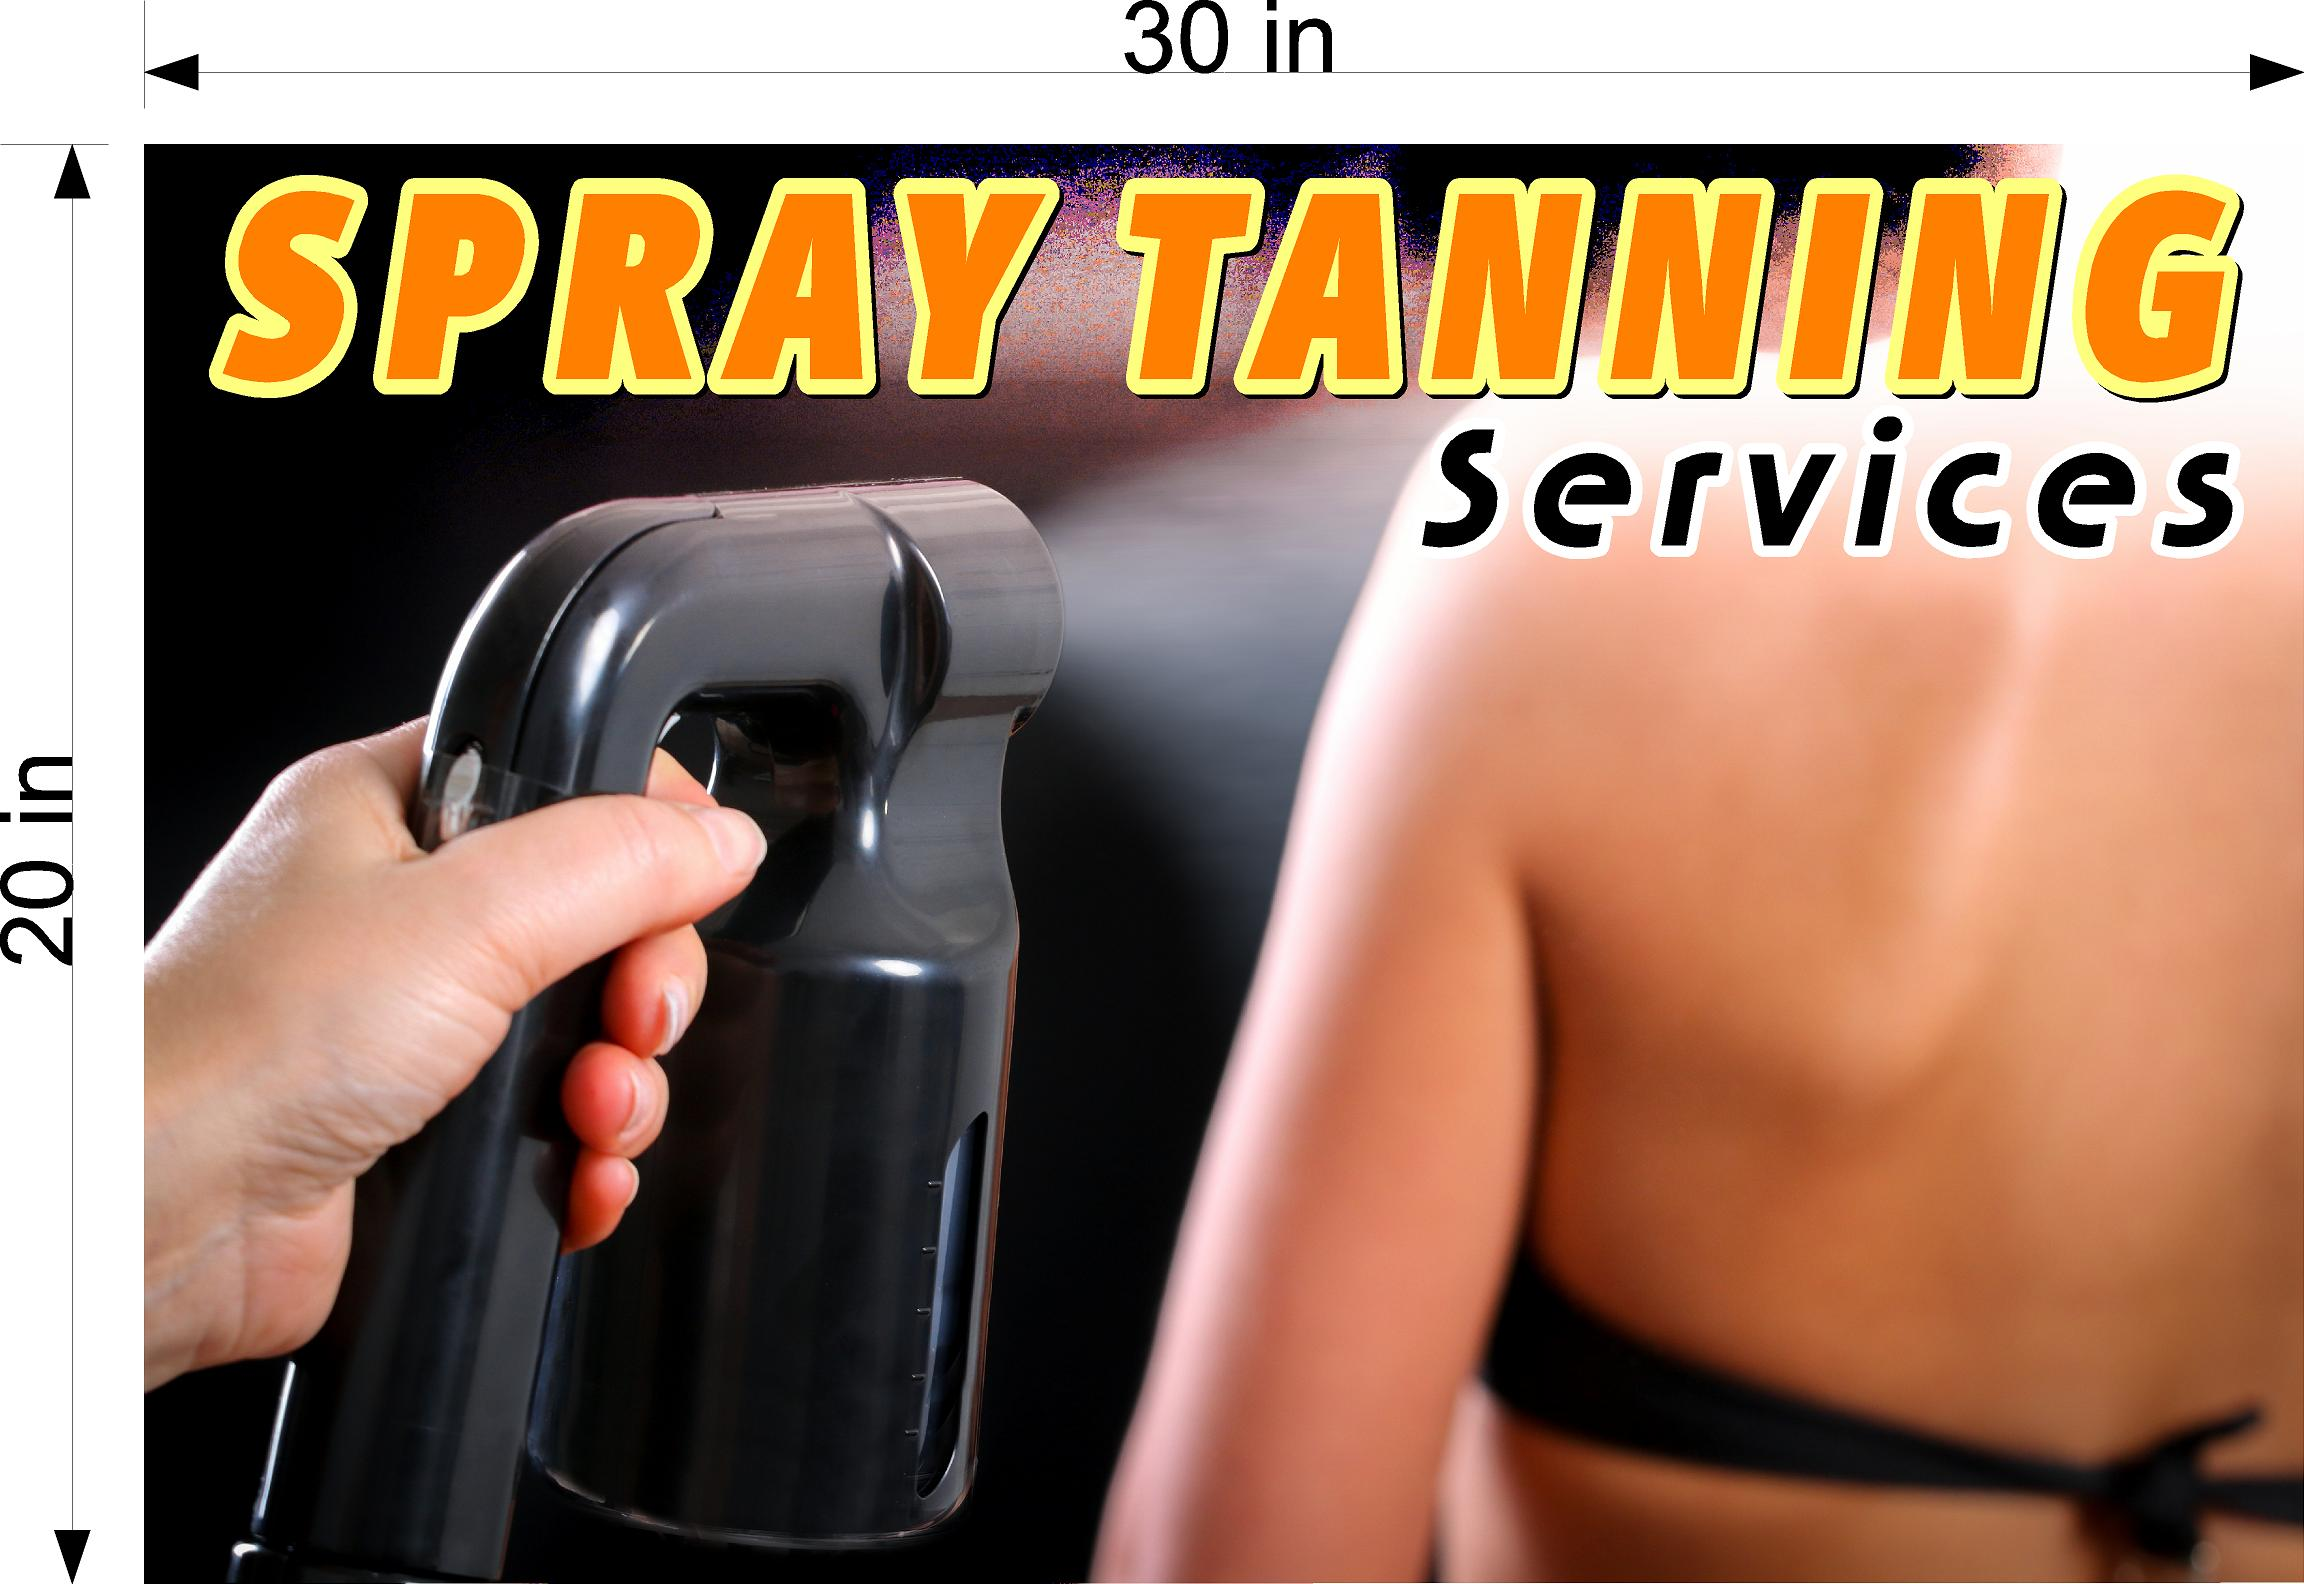 Tanning 08 Perforated Mesh One Way Vision Window Vinyl Nail Salon See-Through Sign Solarium Spray Sun Horizontal